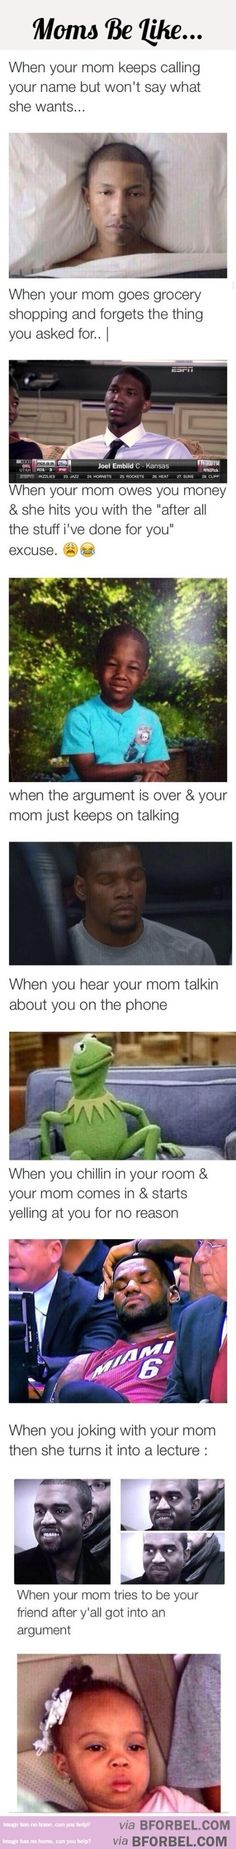 8 Times Moms Be Like…